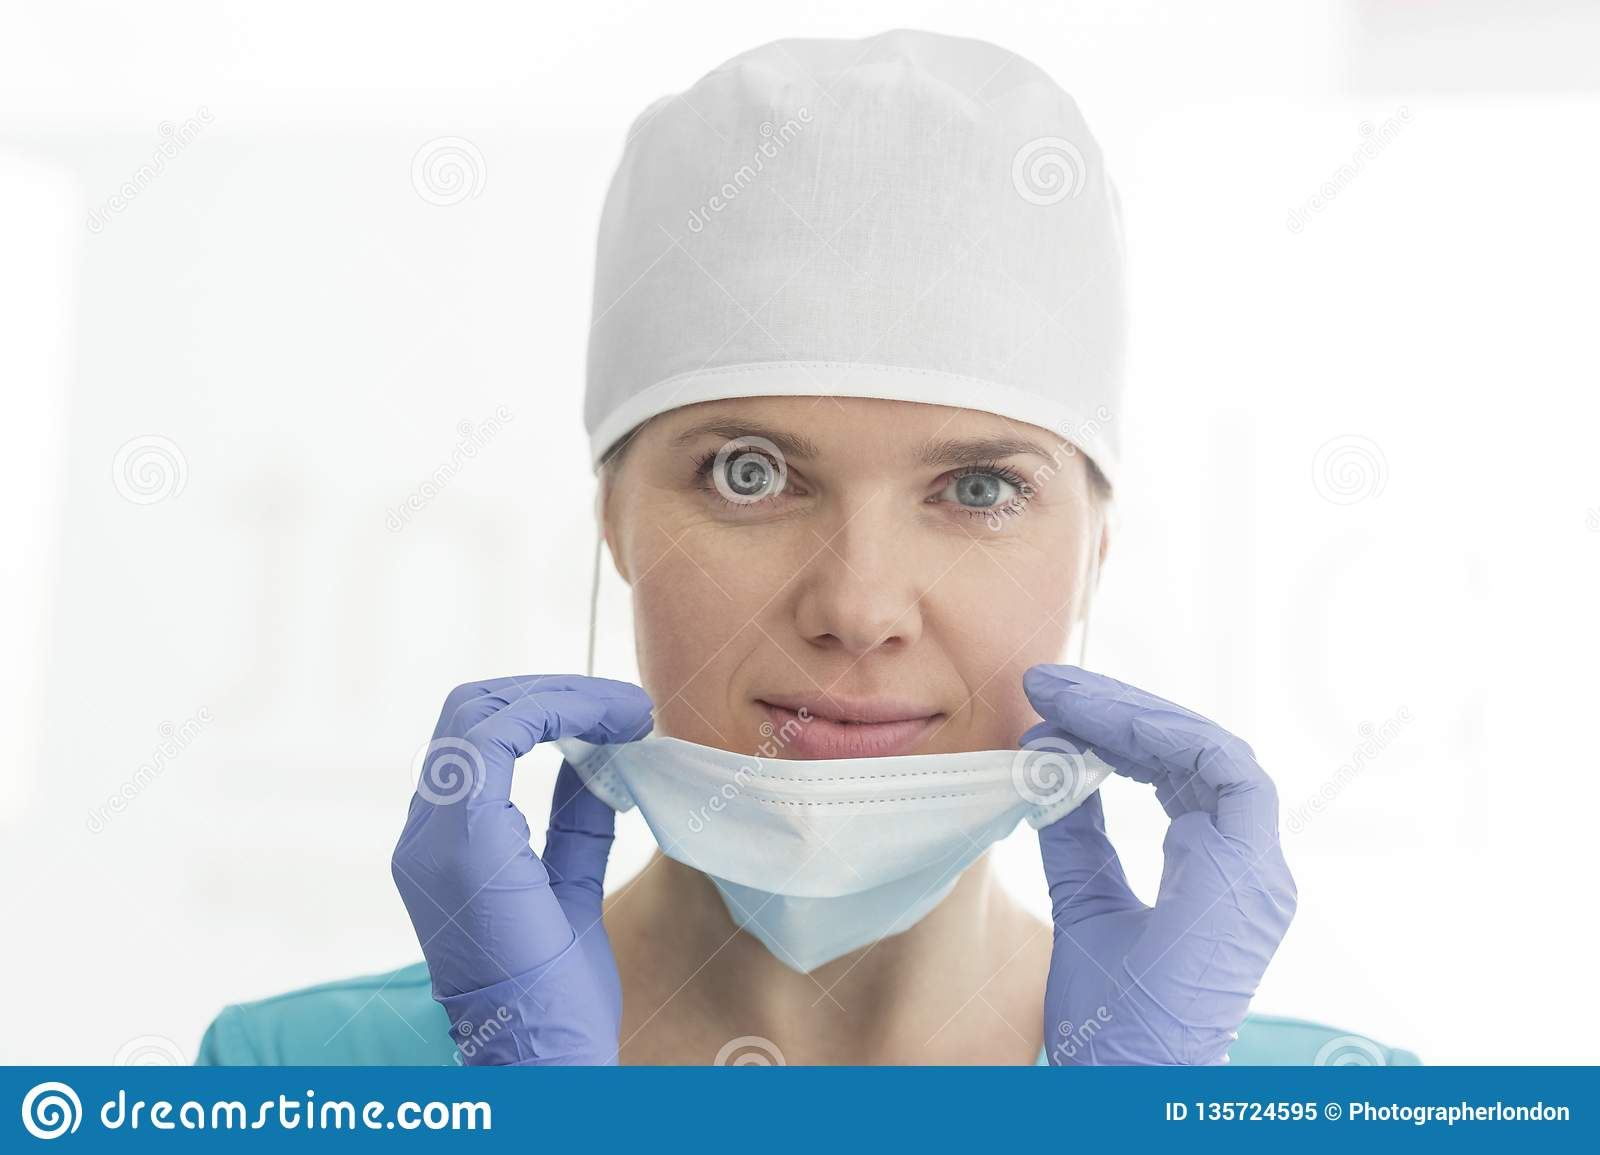 masque chirurgical sourire